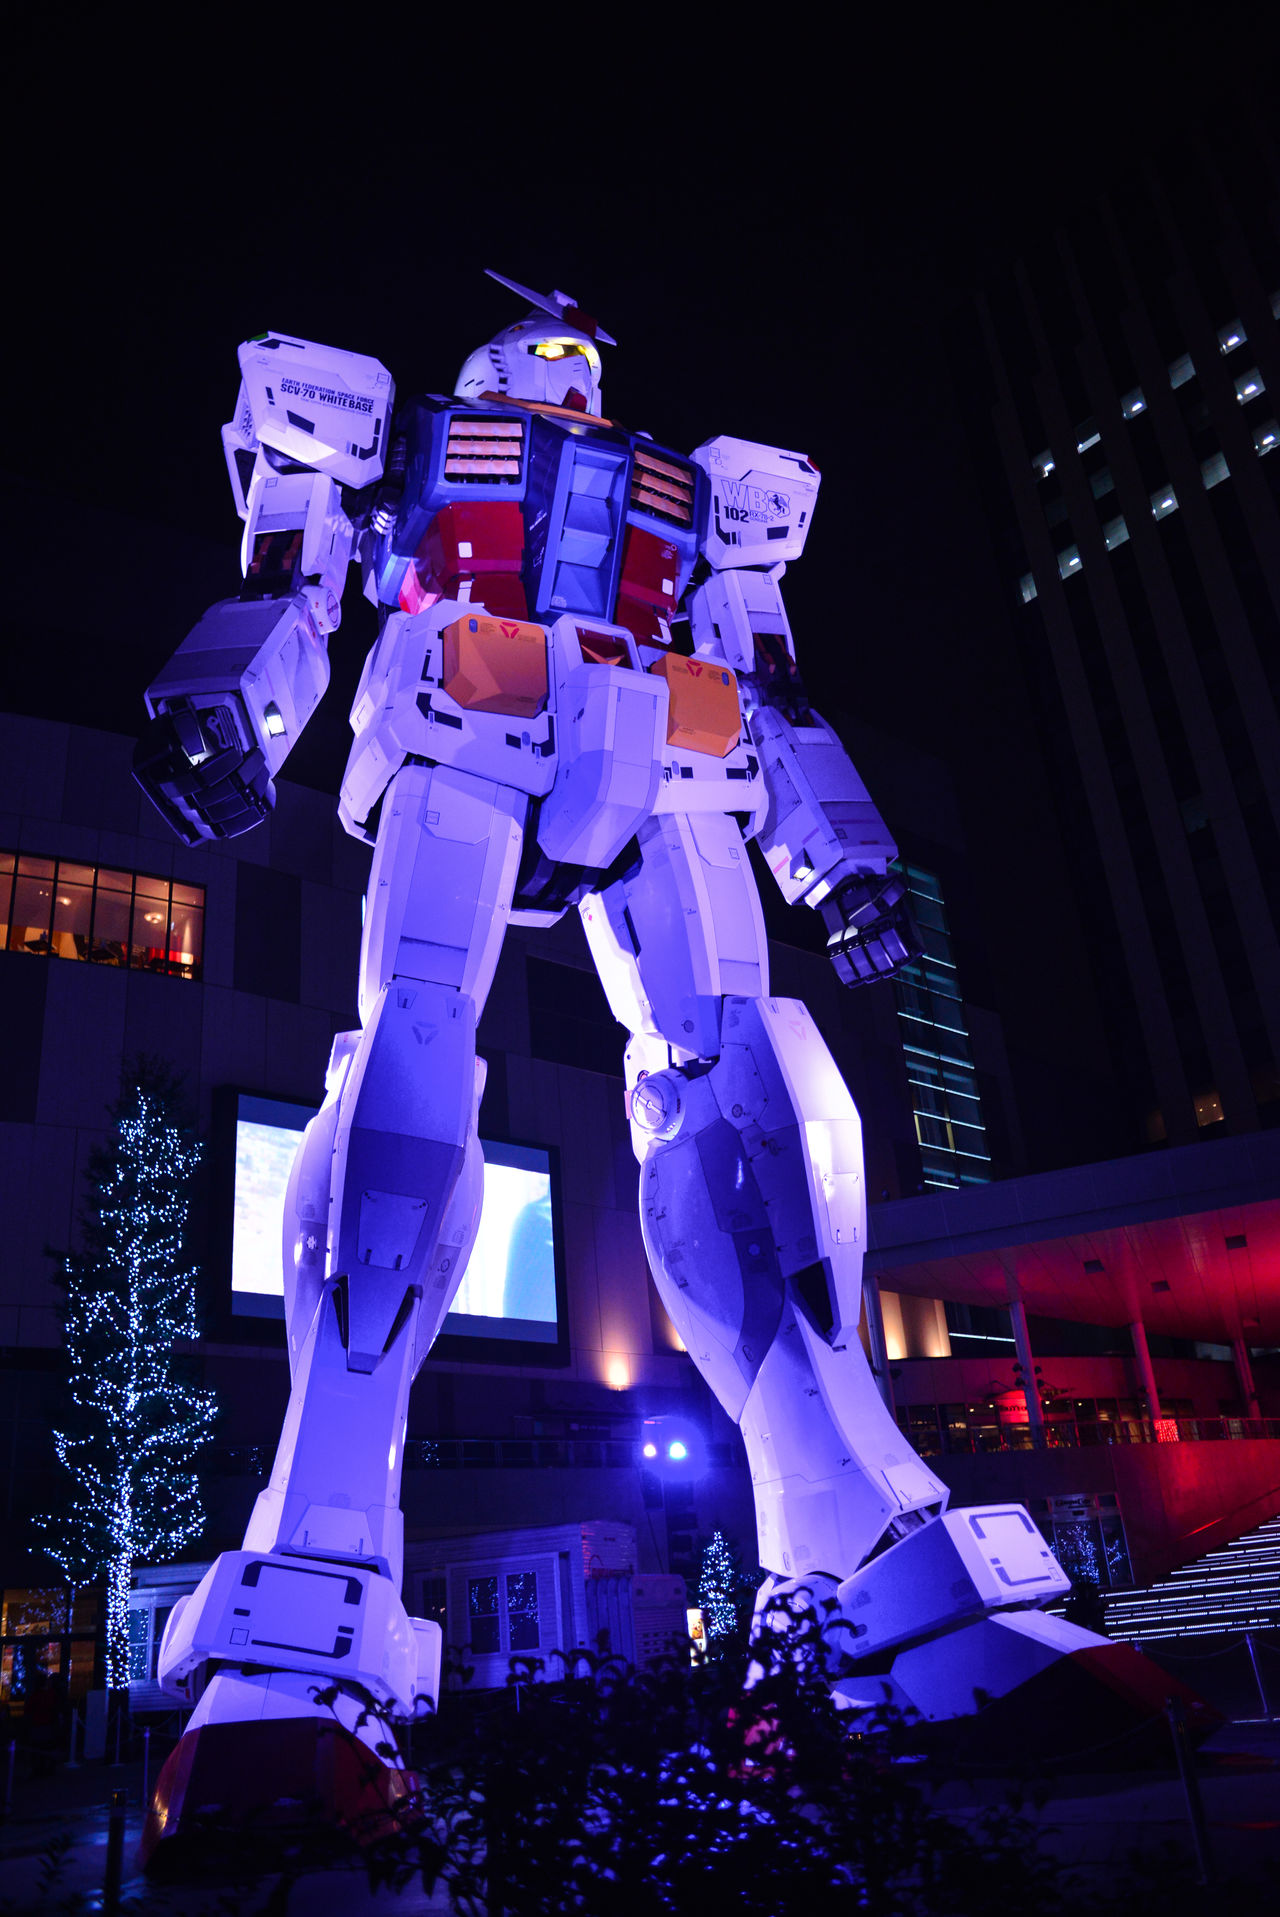 Art And Craft Building Exterior Built Structure Gundam Human Representation Illuminated Low Angle View Night Odiba Sculpture Ultimate Japan